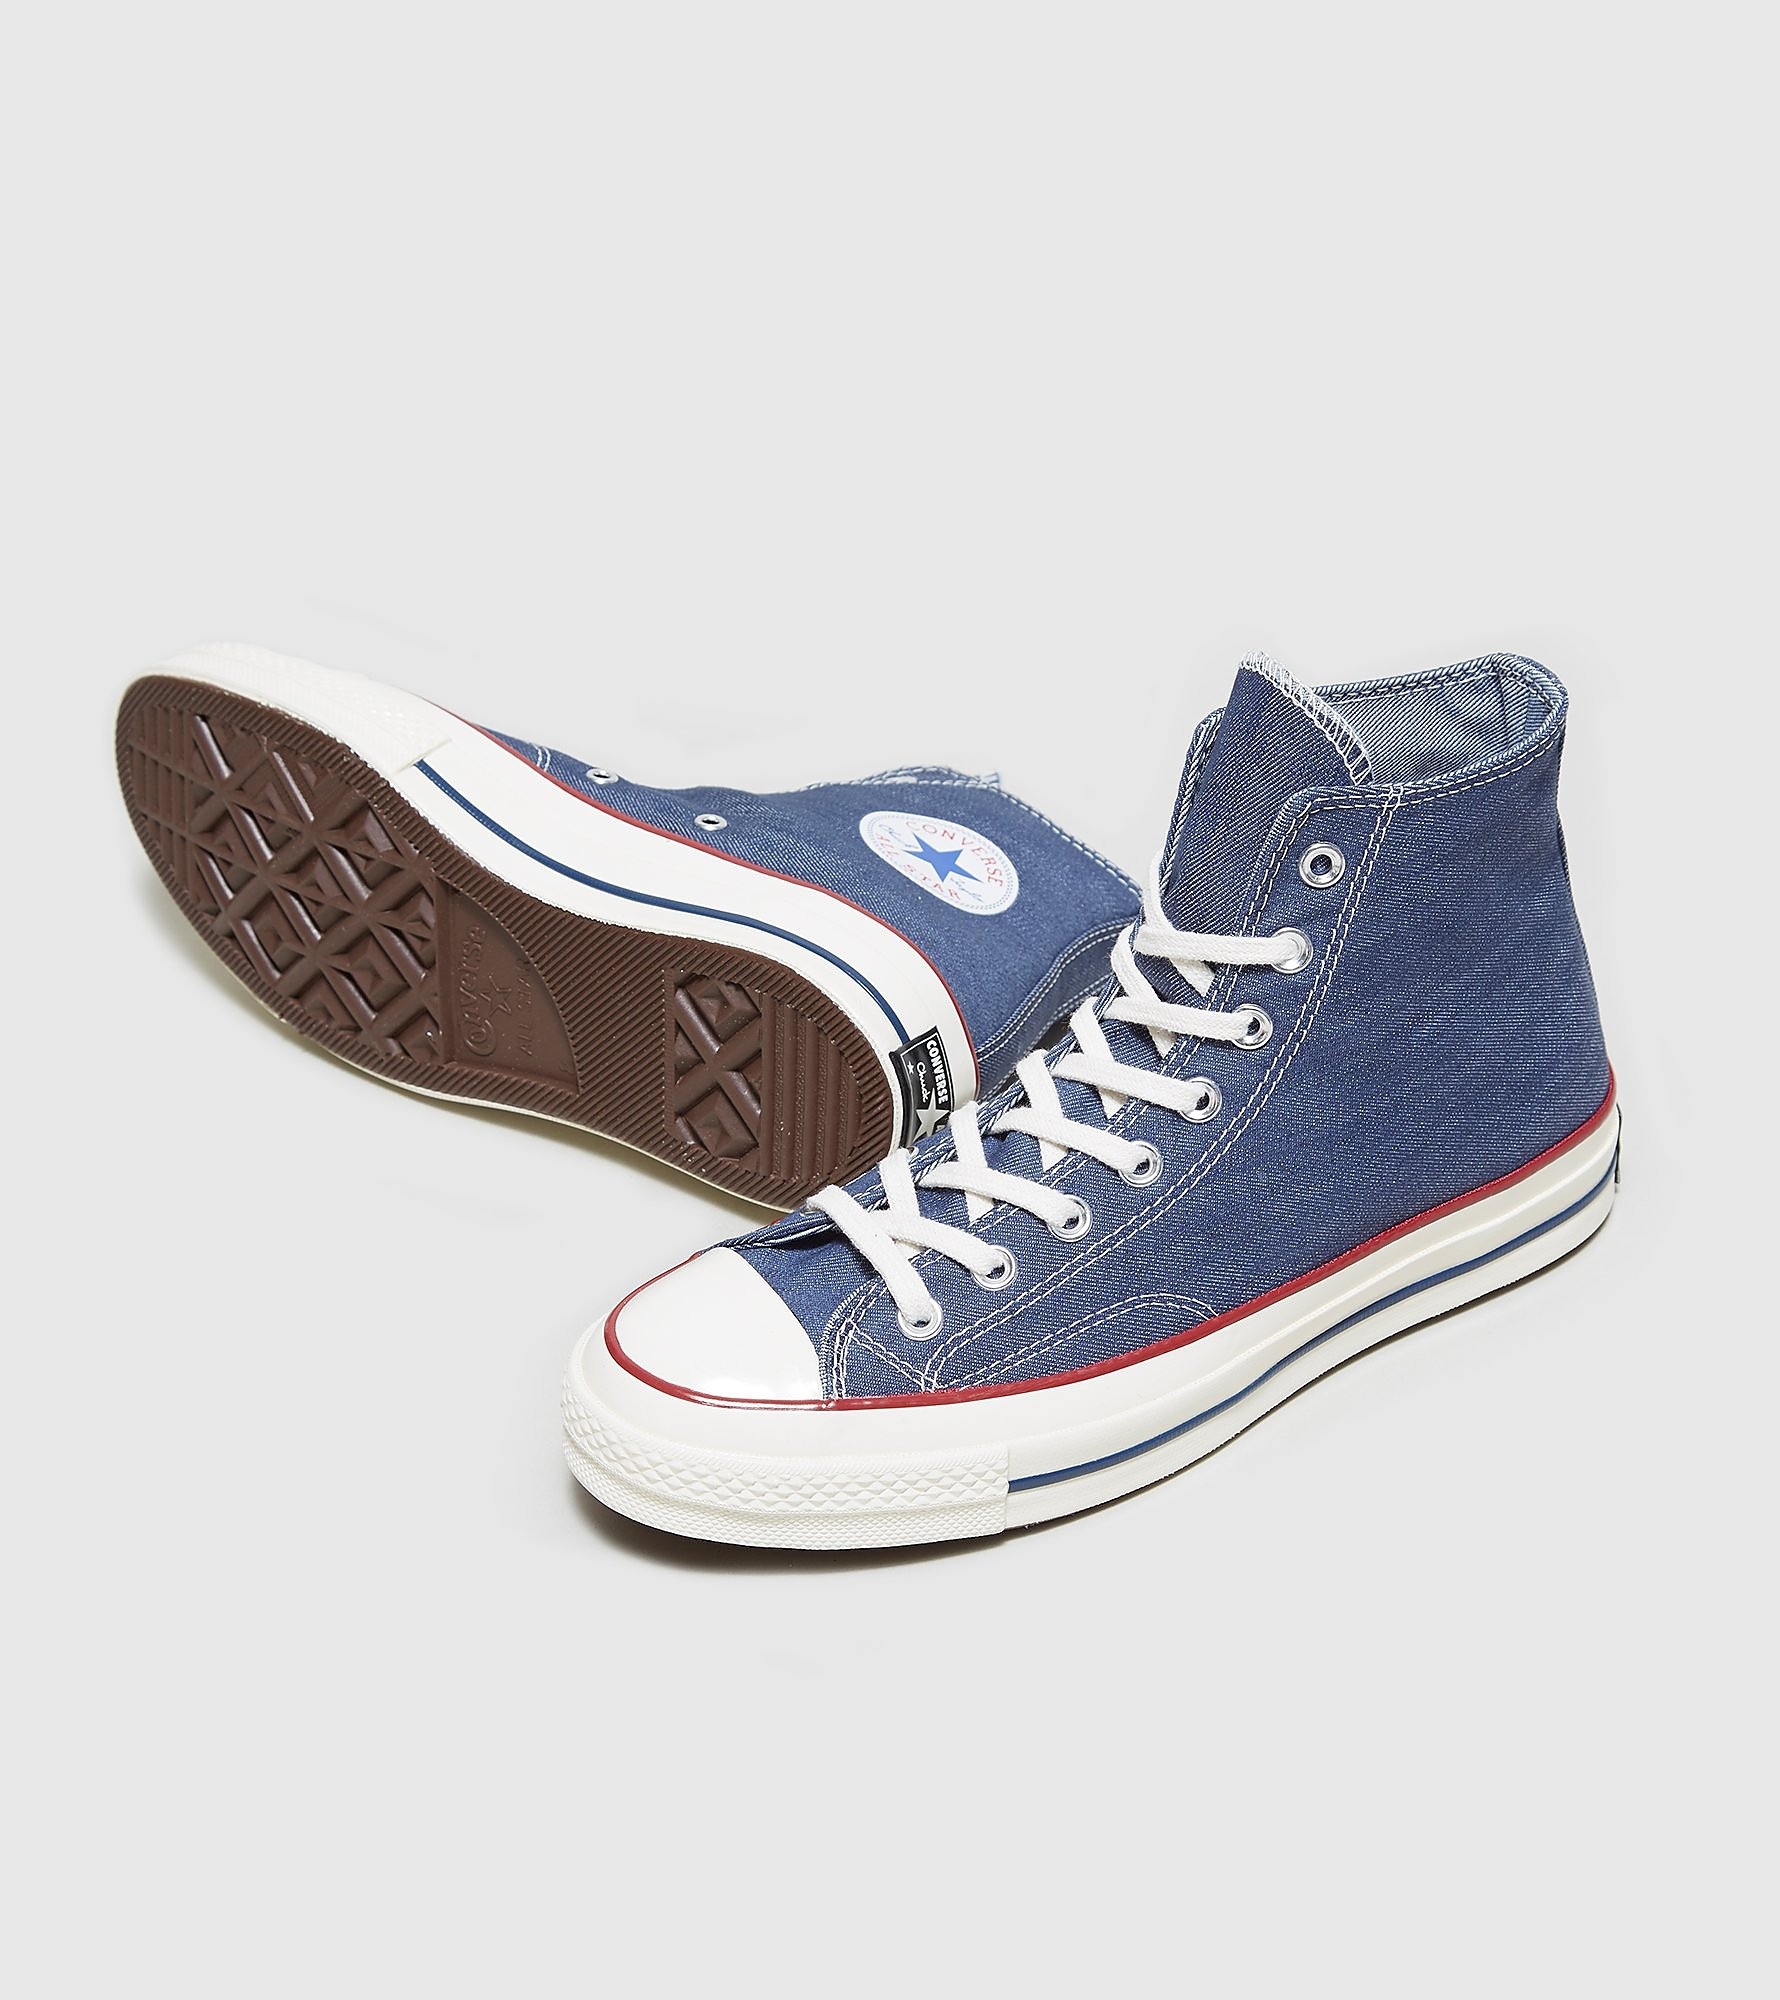 Converse Chuck Taylor All Star '70 Denim